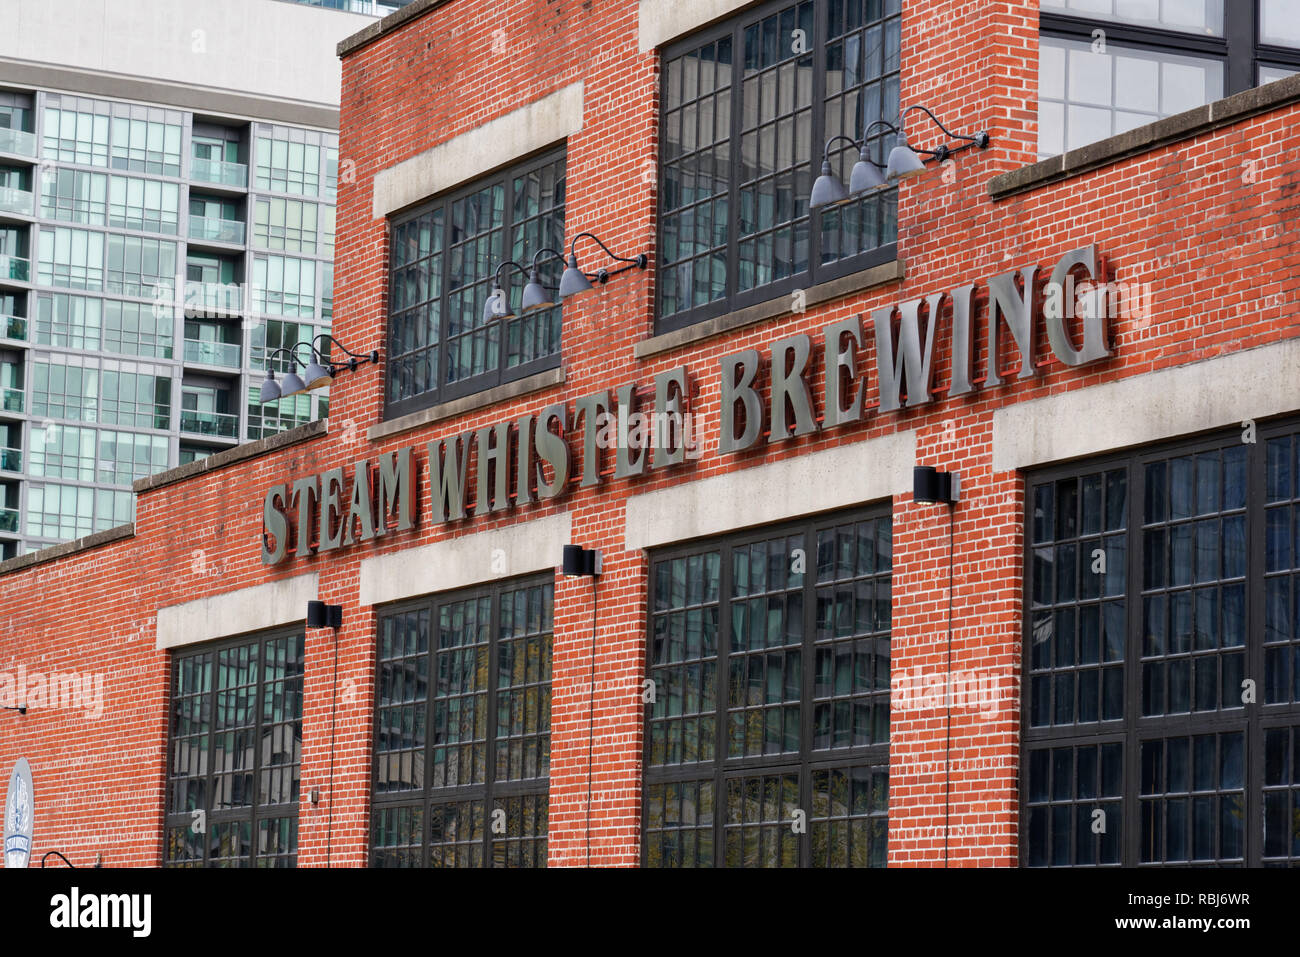 The Steam Whistle Brewing company building in Toronto, Canada - Stock Image